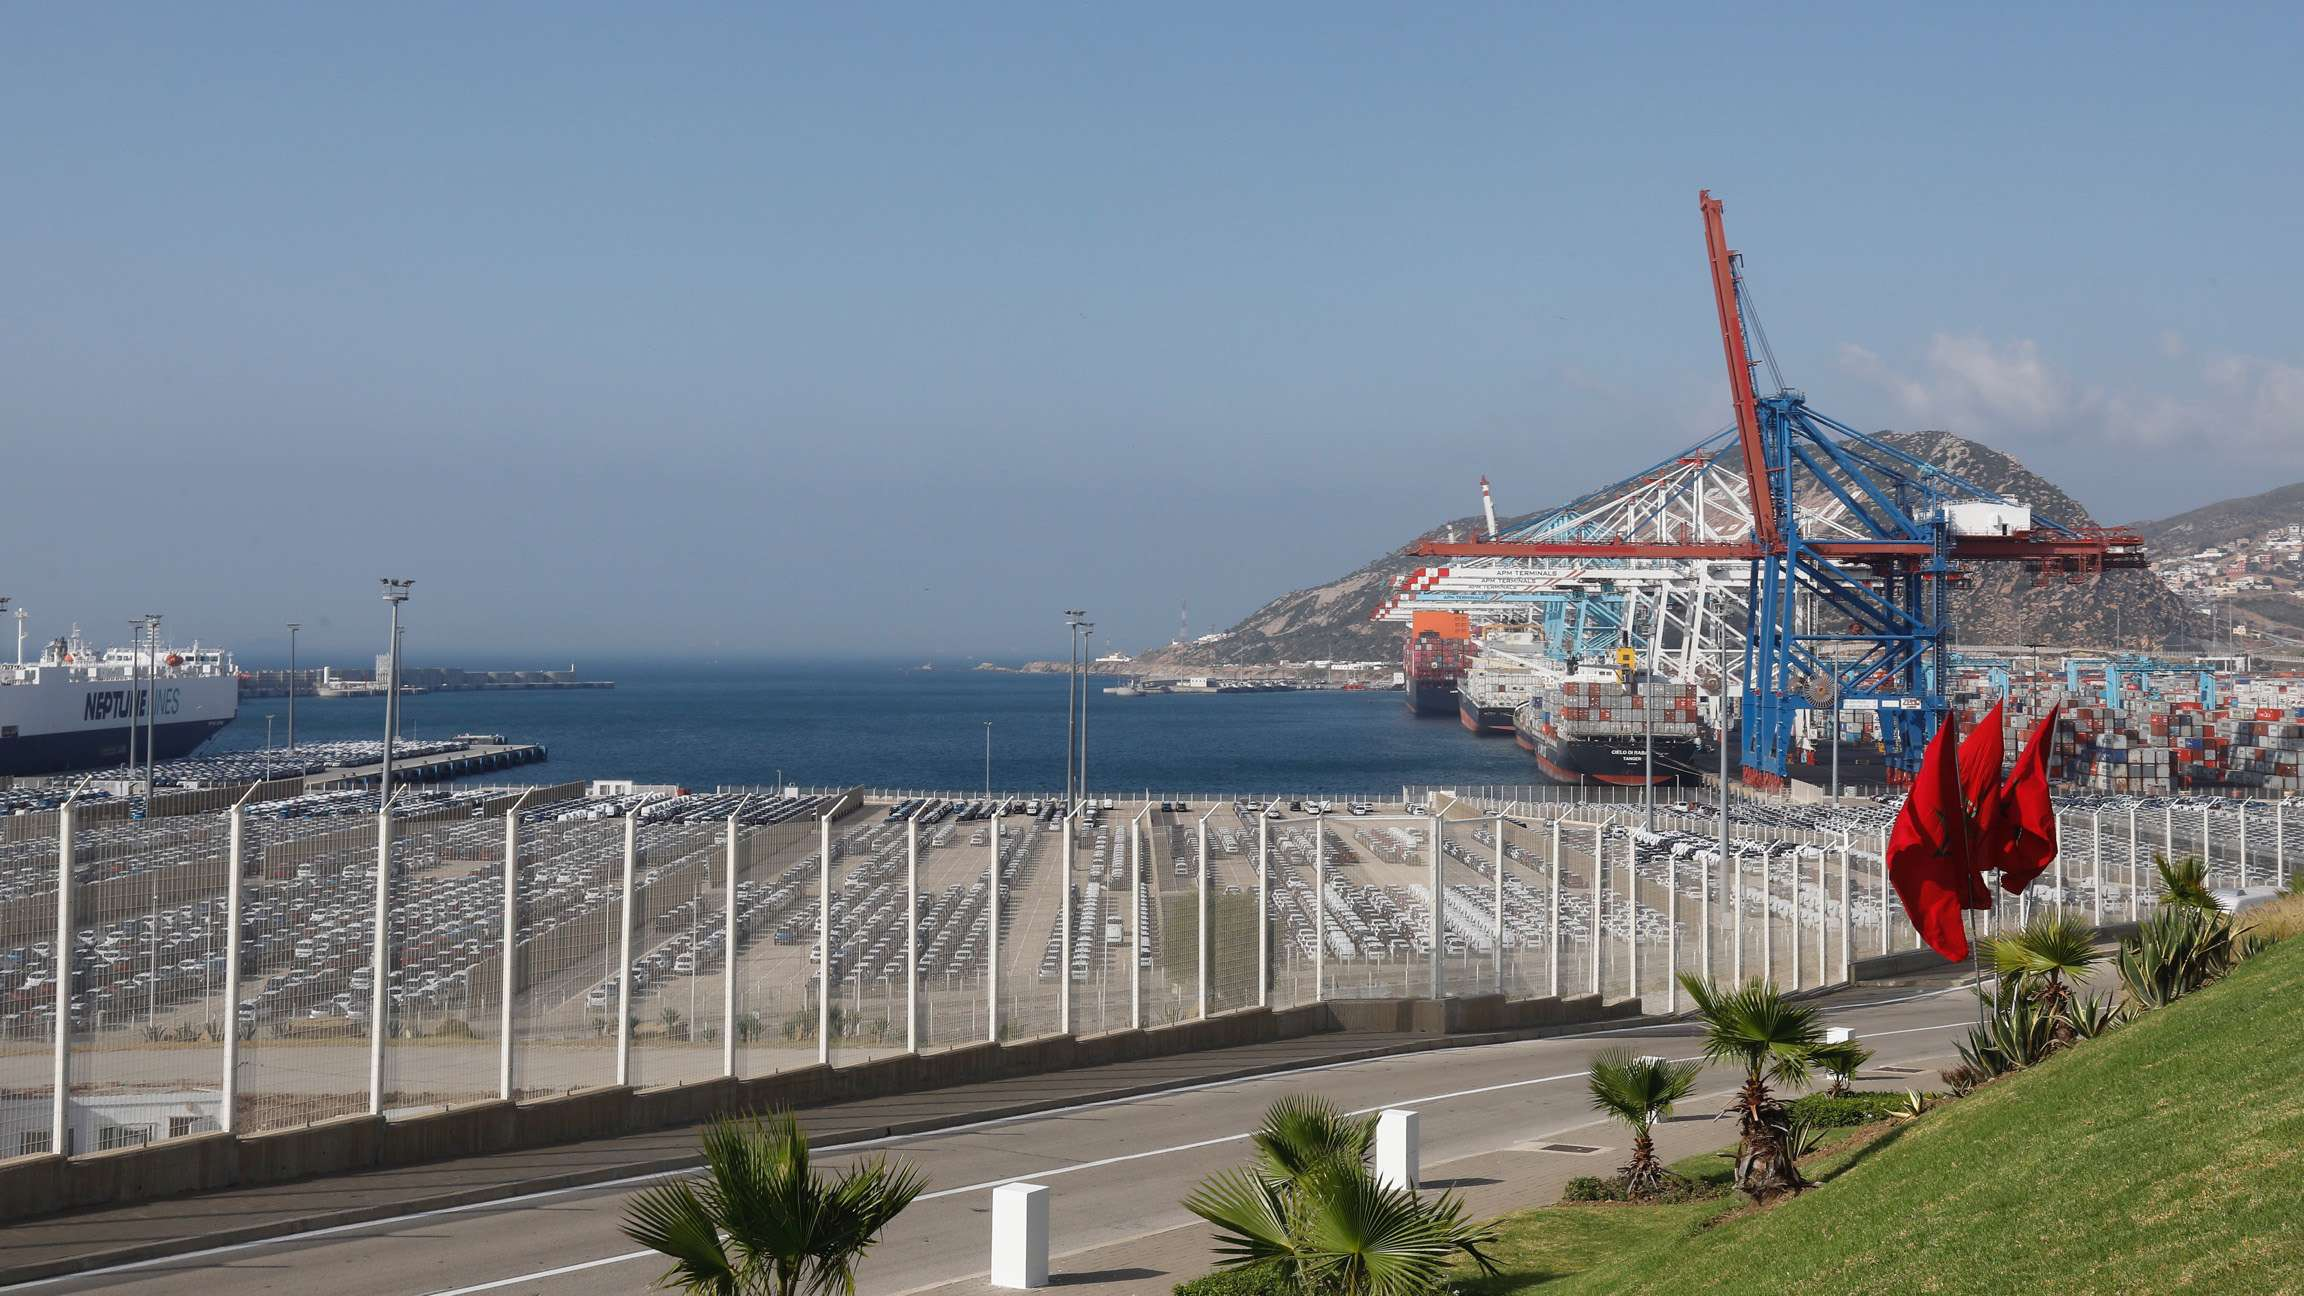 This picture taken on June 28, 2019 shows a view of terminal I of the Tanger Med port in the northern city of Tangiers on the Strait of Gibraltar. (AFP)